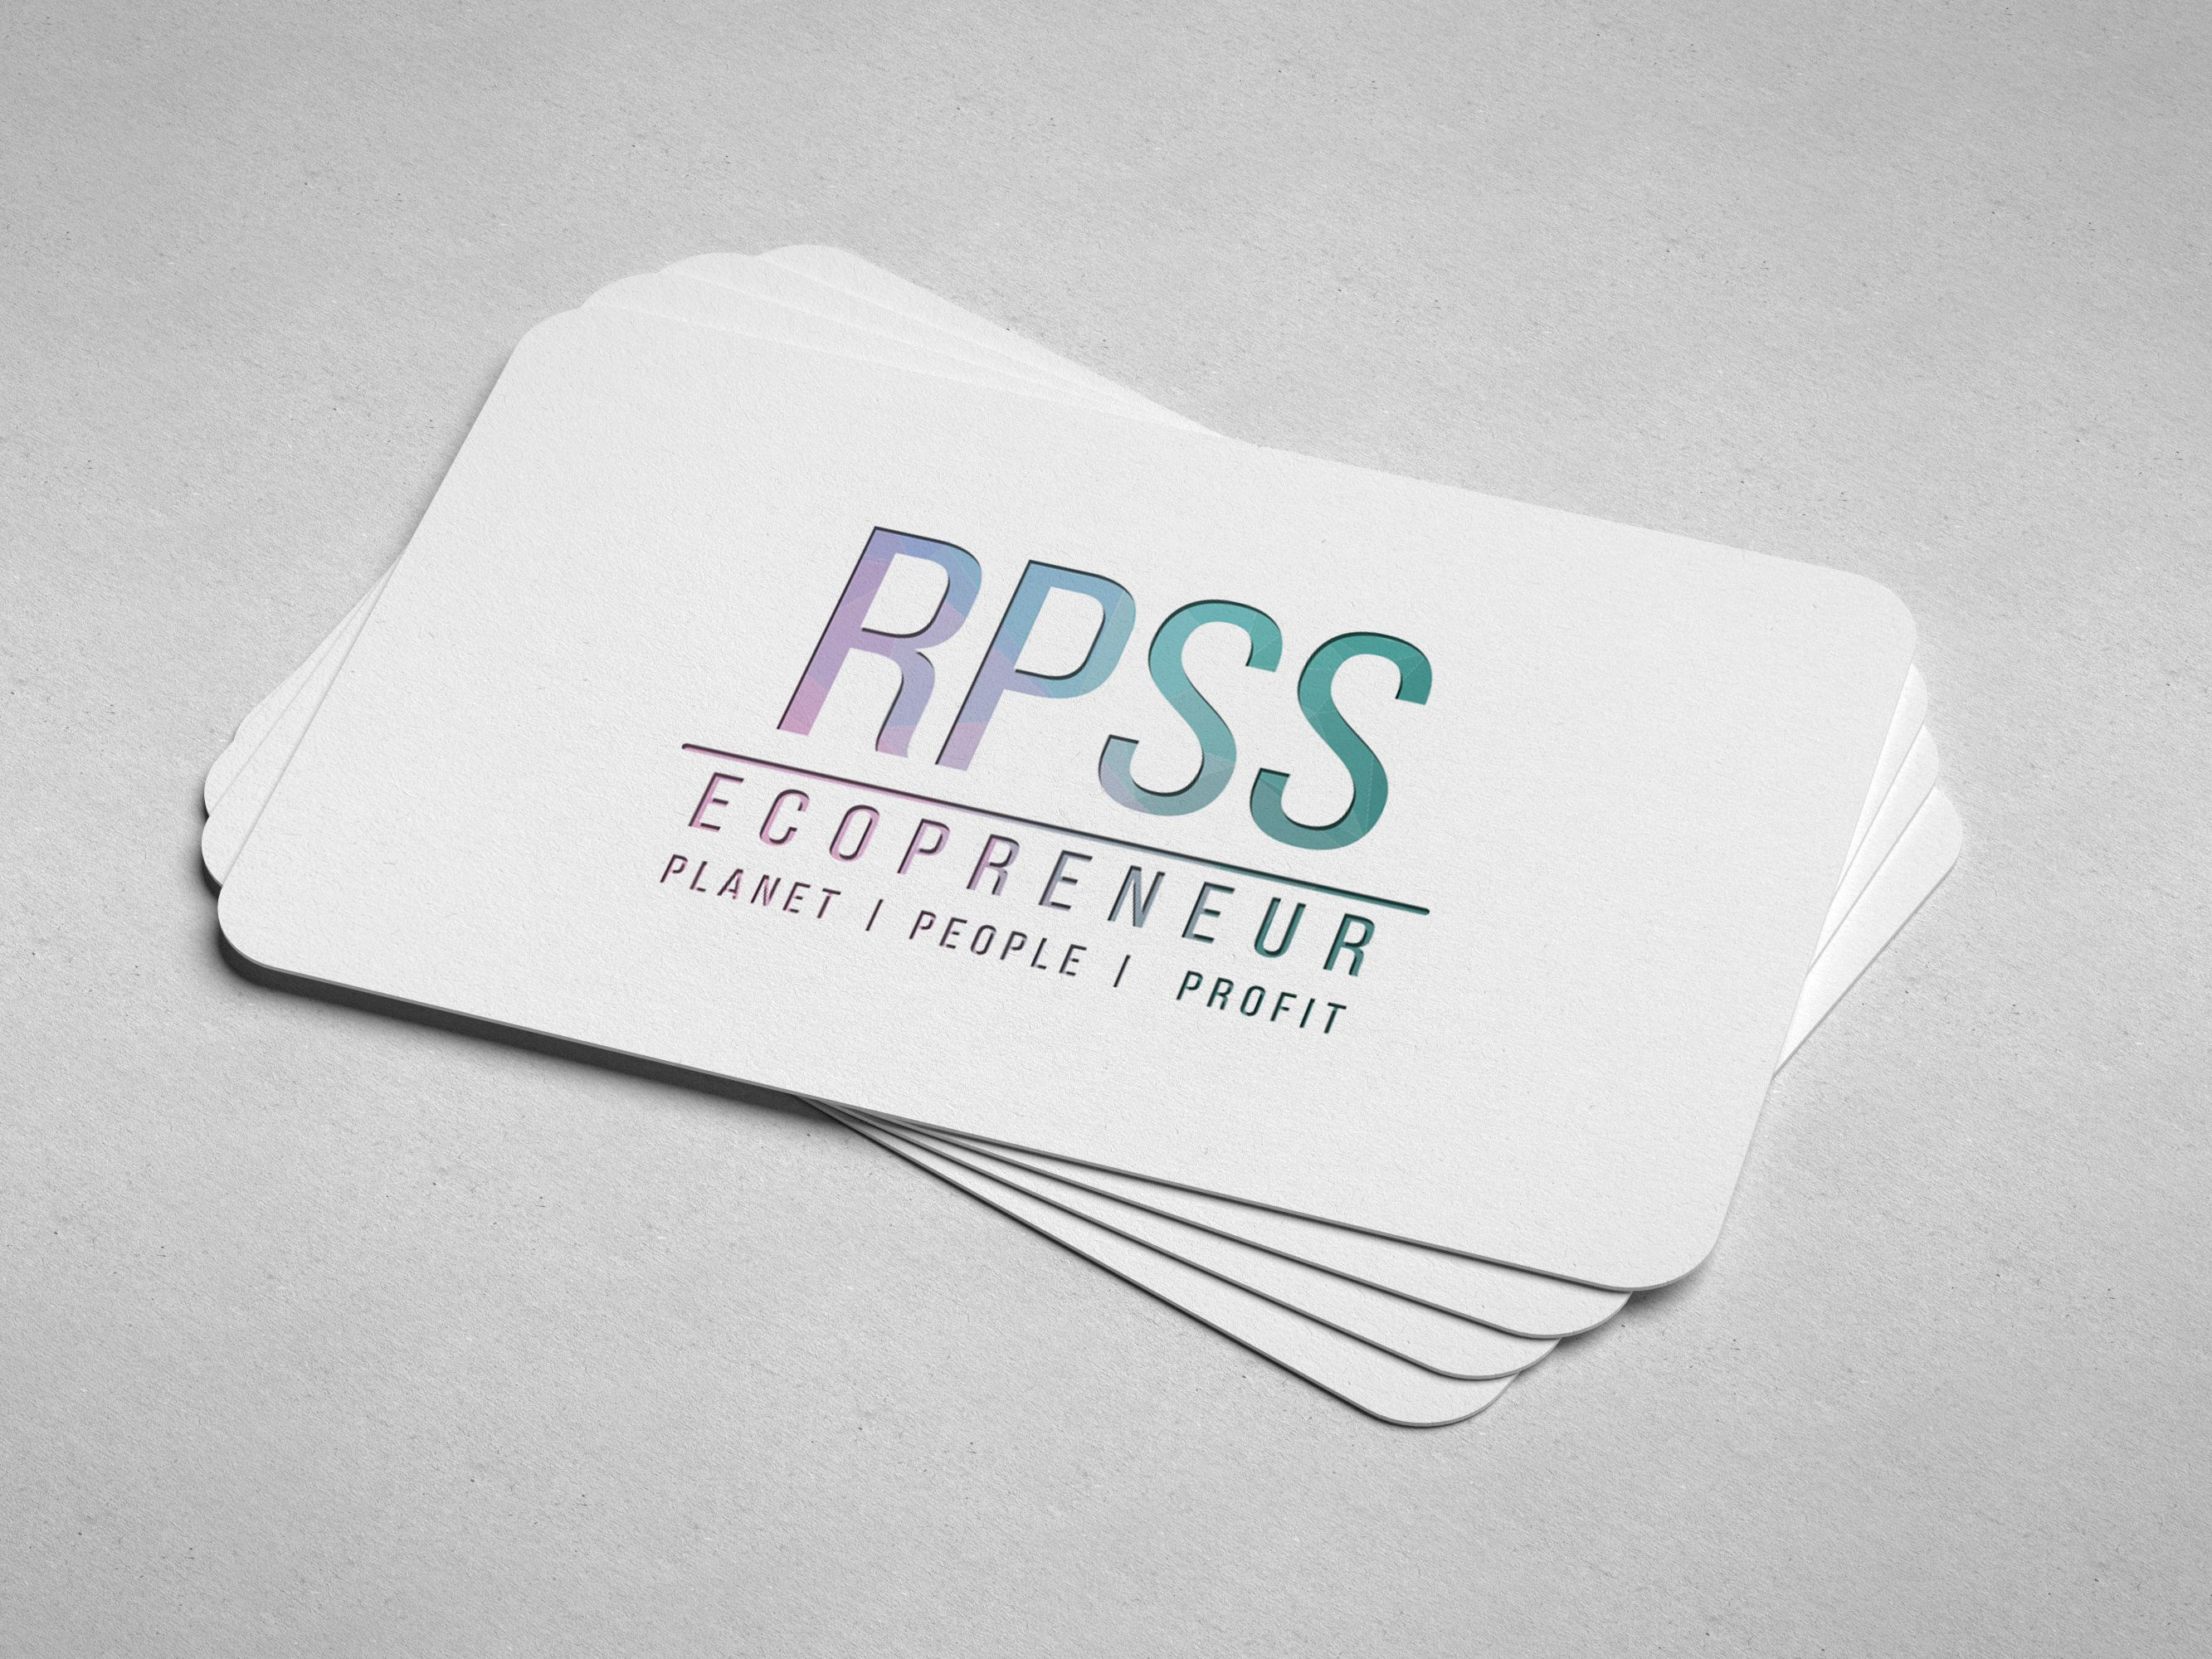 Pin By Krinosis On Business Cards Design Visiting Cards Business Card Design Card Design